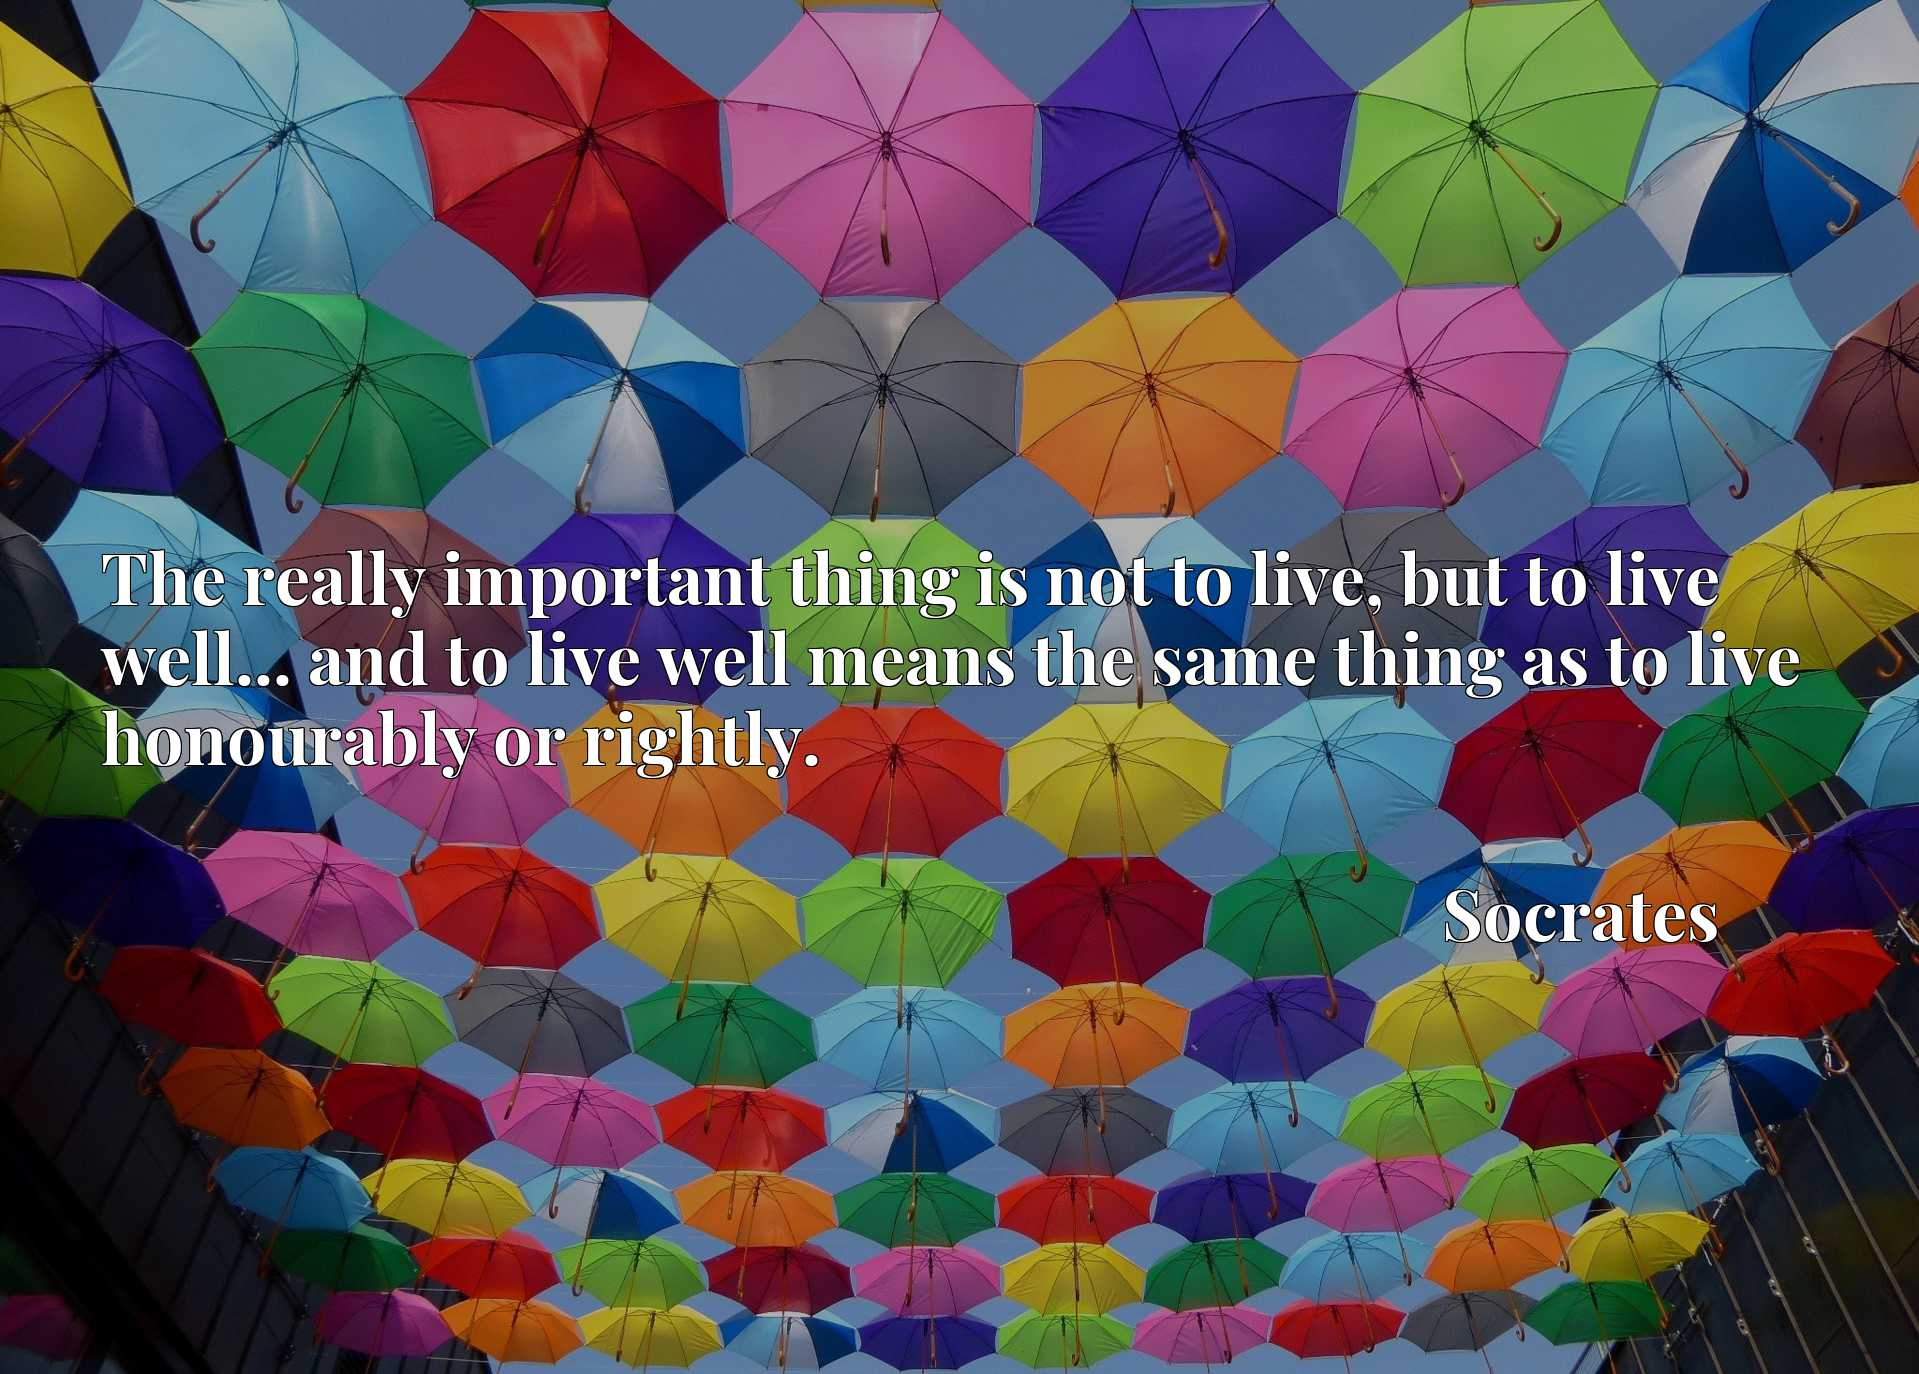 The really important thing is not to live, but to live well... and to live well means the same thing as to live honourably or rightly.